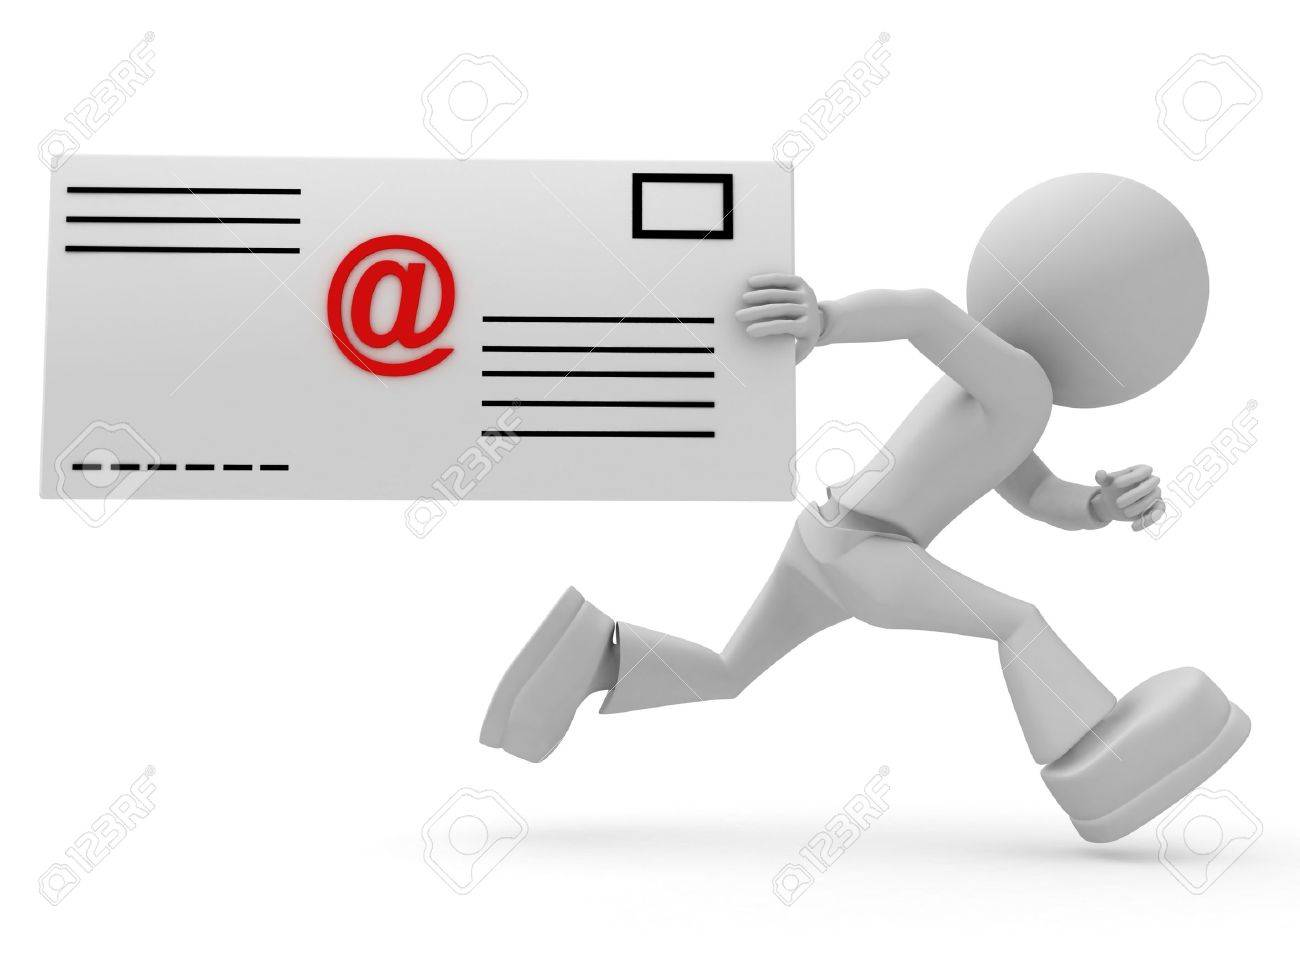 Email Letter Background Stock Photo - Persons with email letter. 3d image isolated on white background.